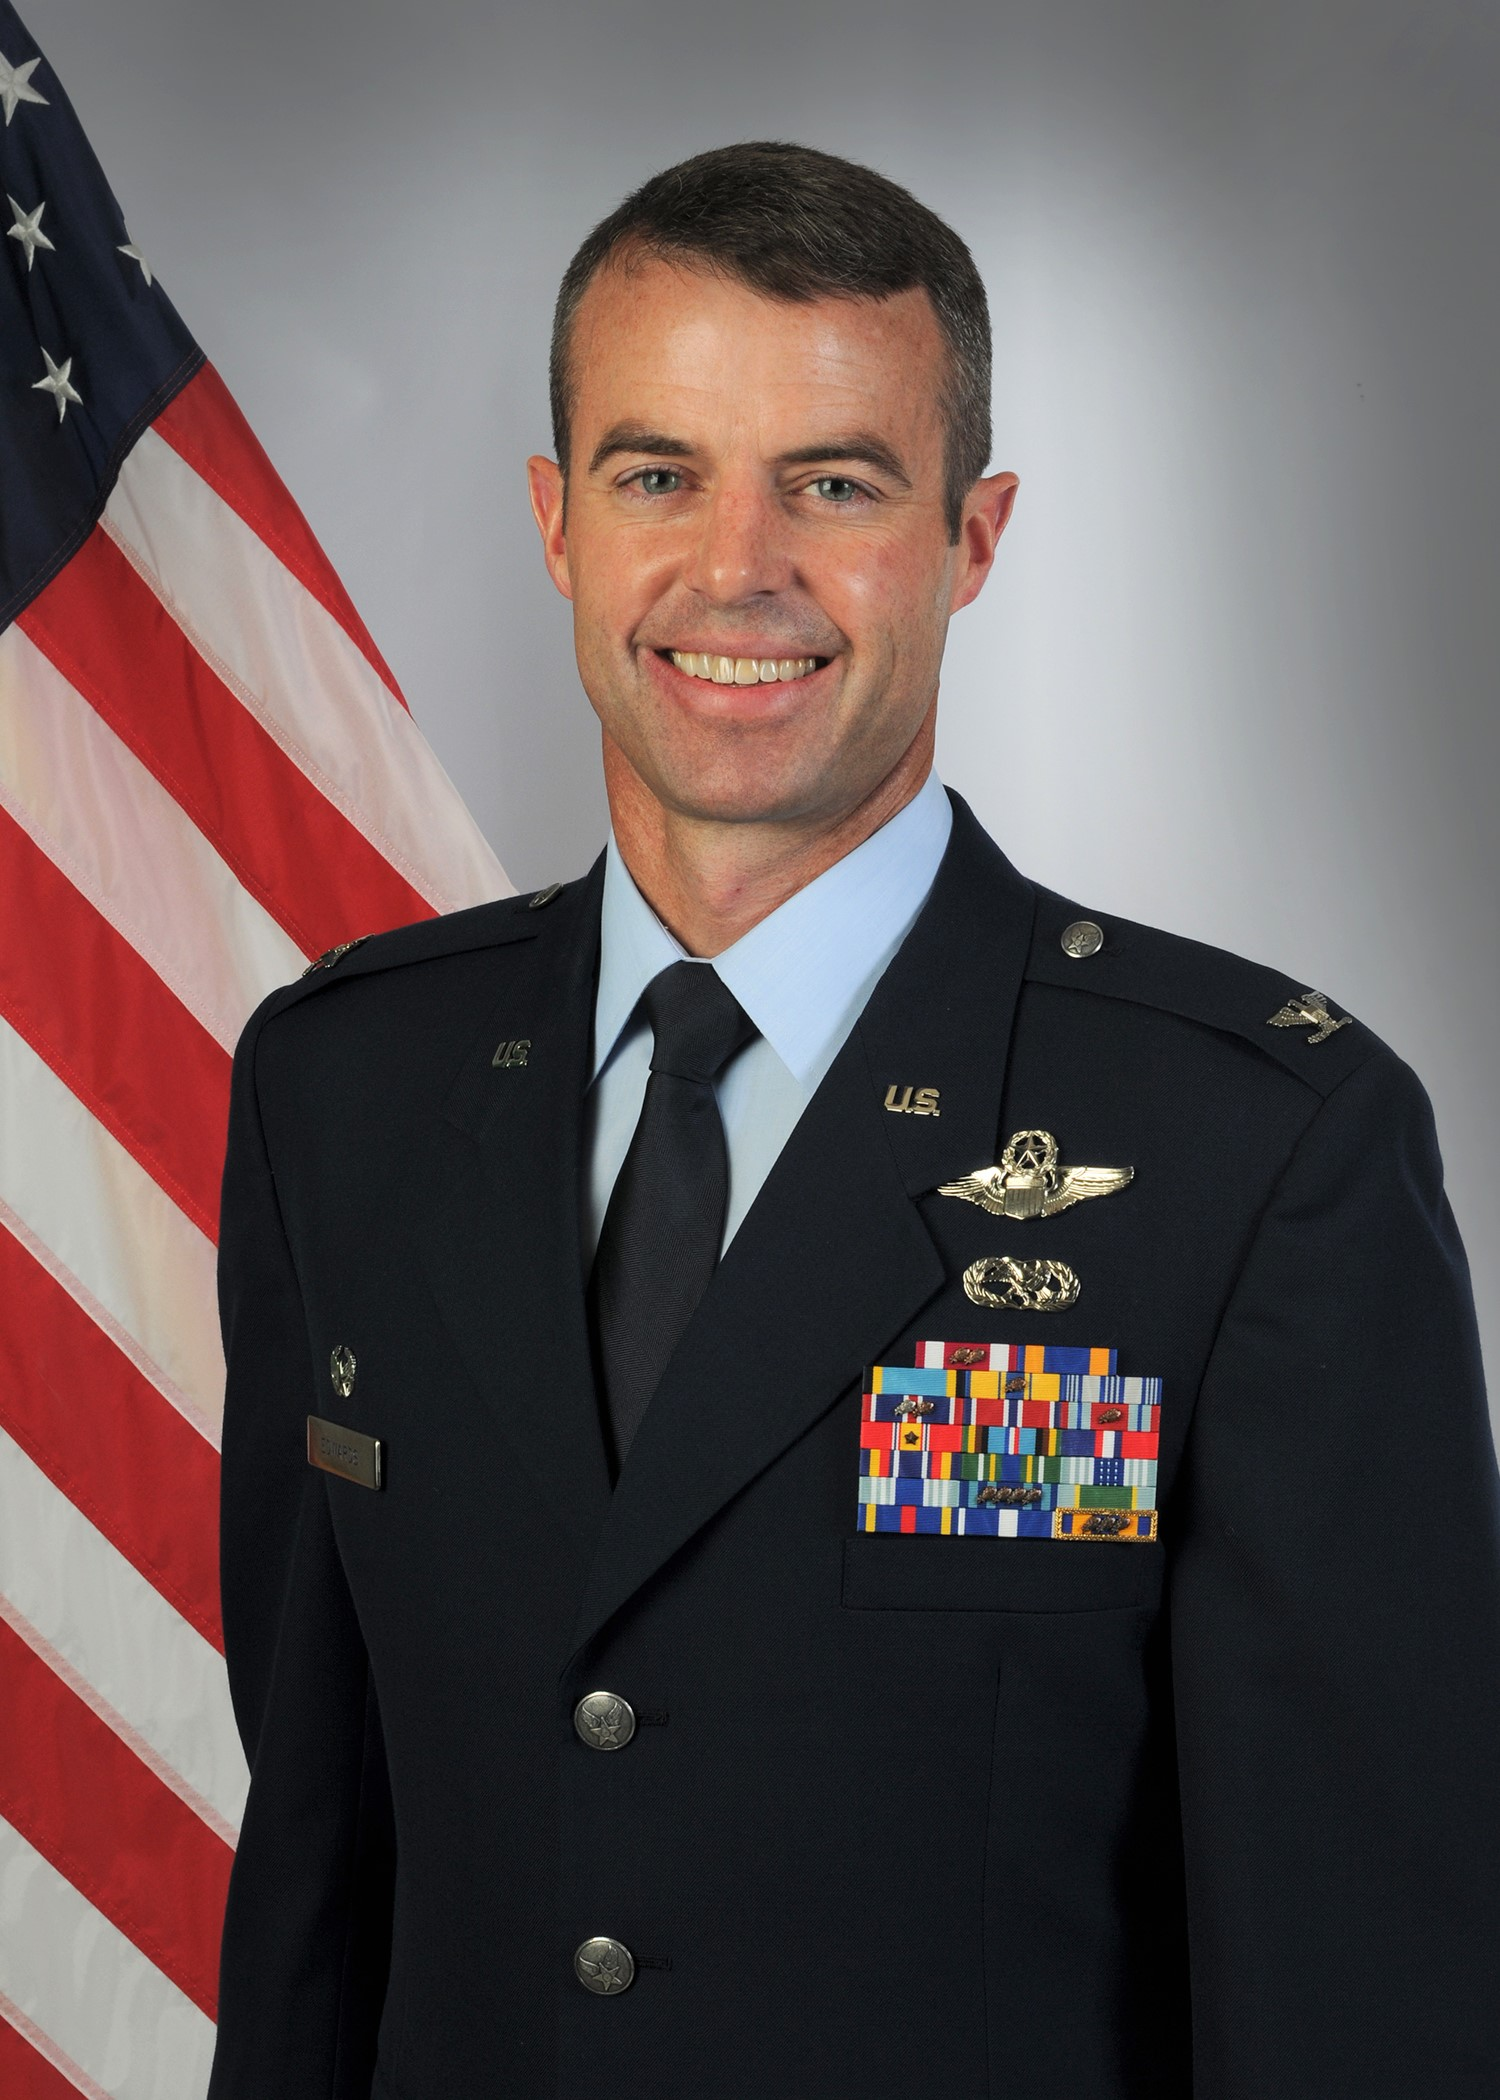 Col. Jeff Edwards